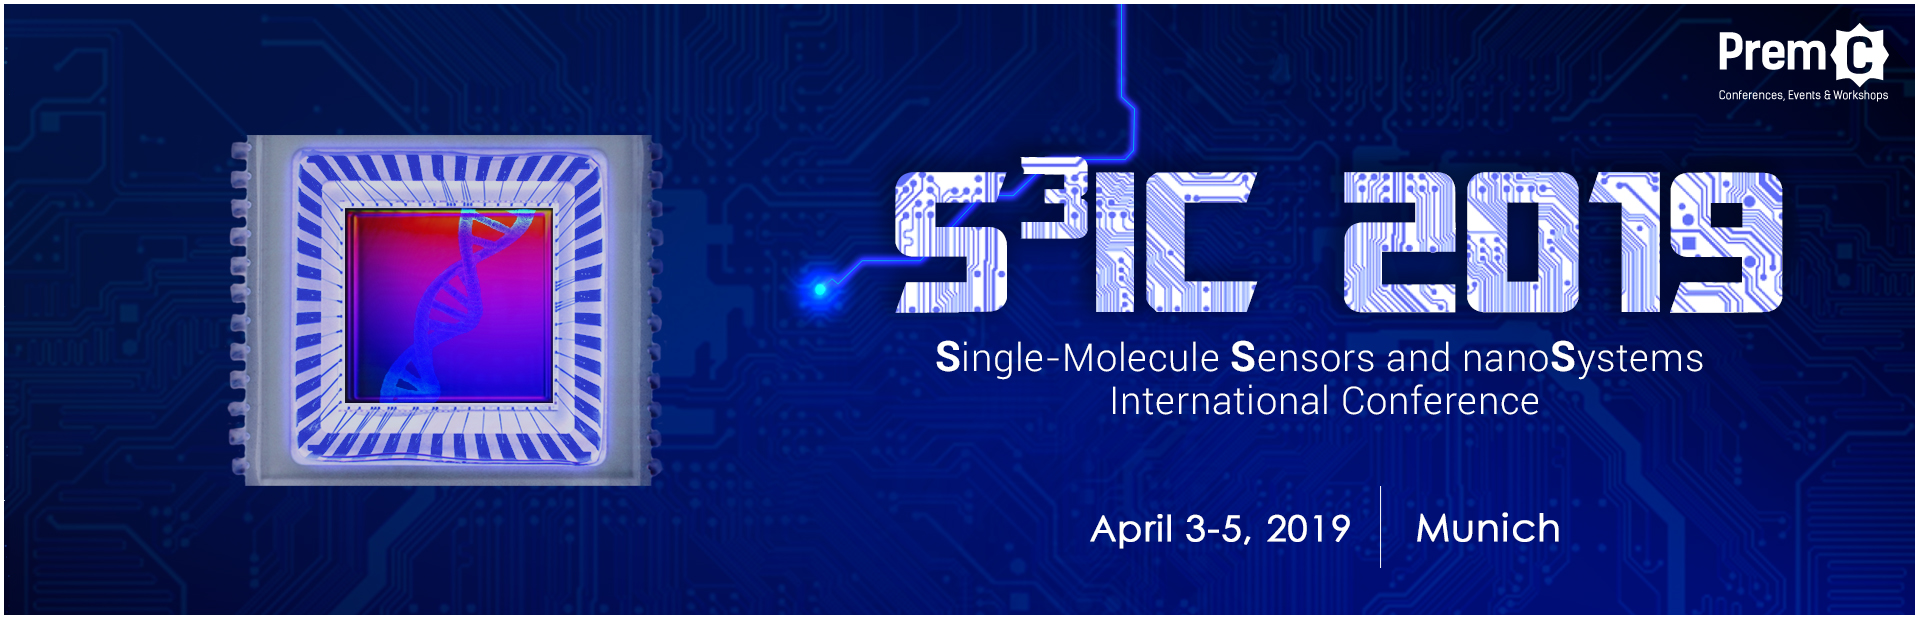 Single-Molecule, Sensors, and nanoSystems International Conference - S3IC 2019